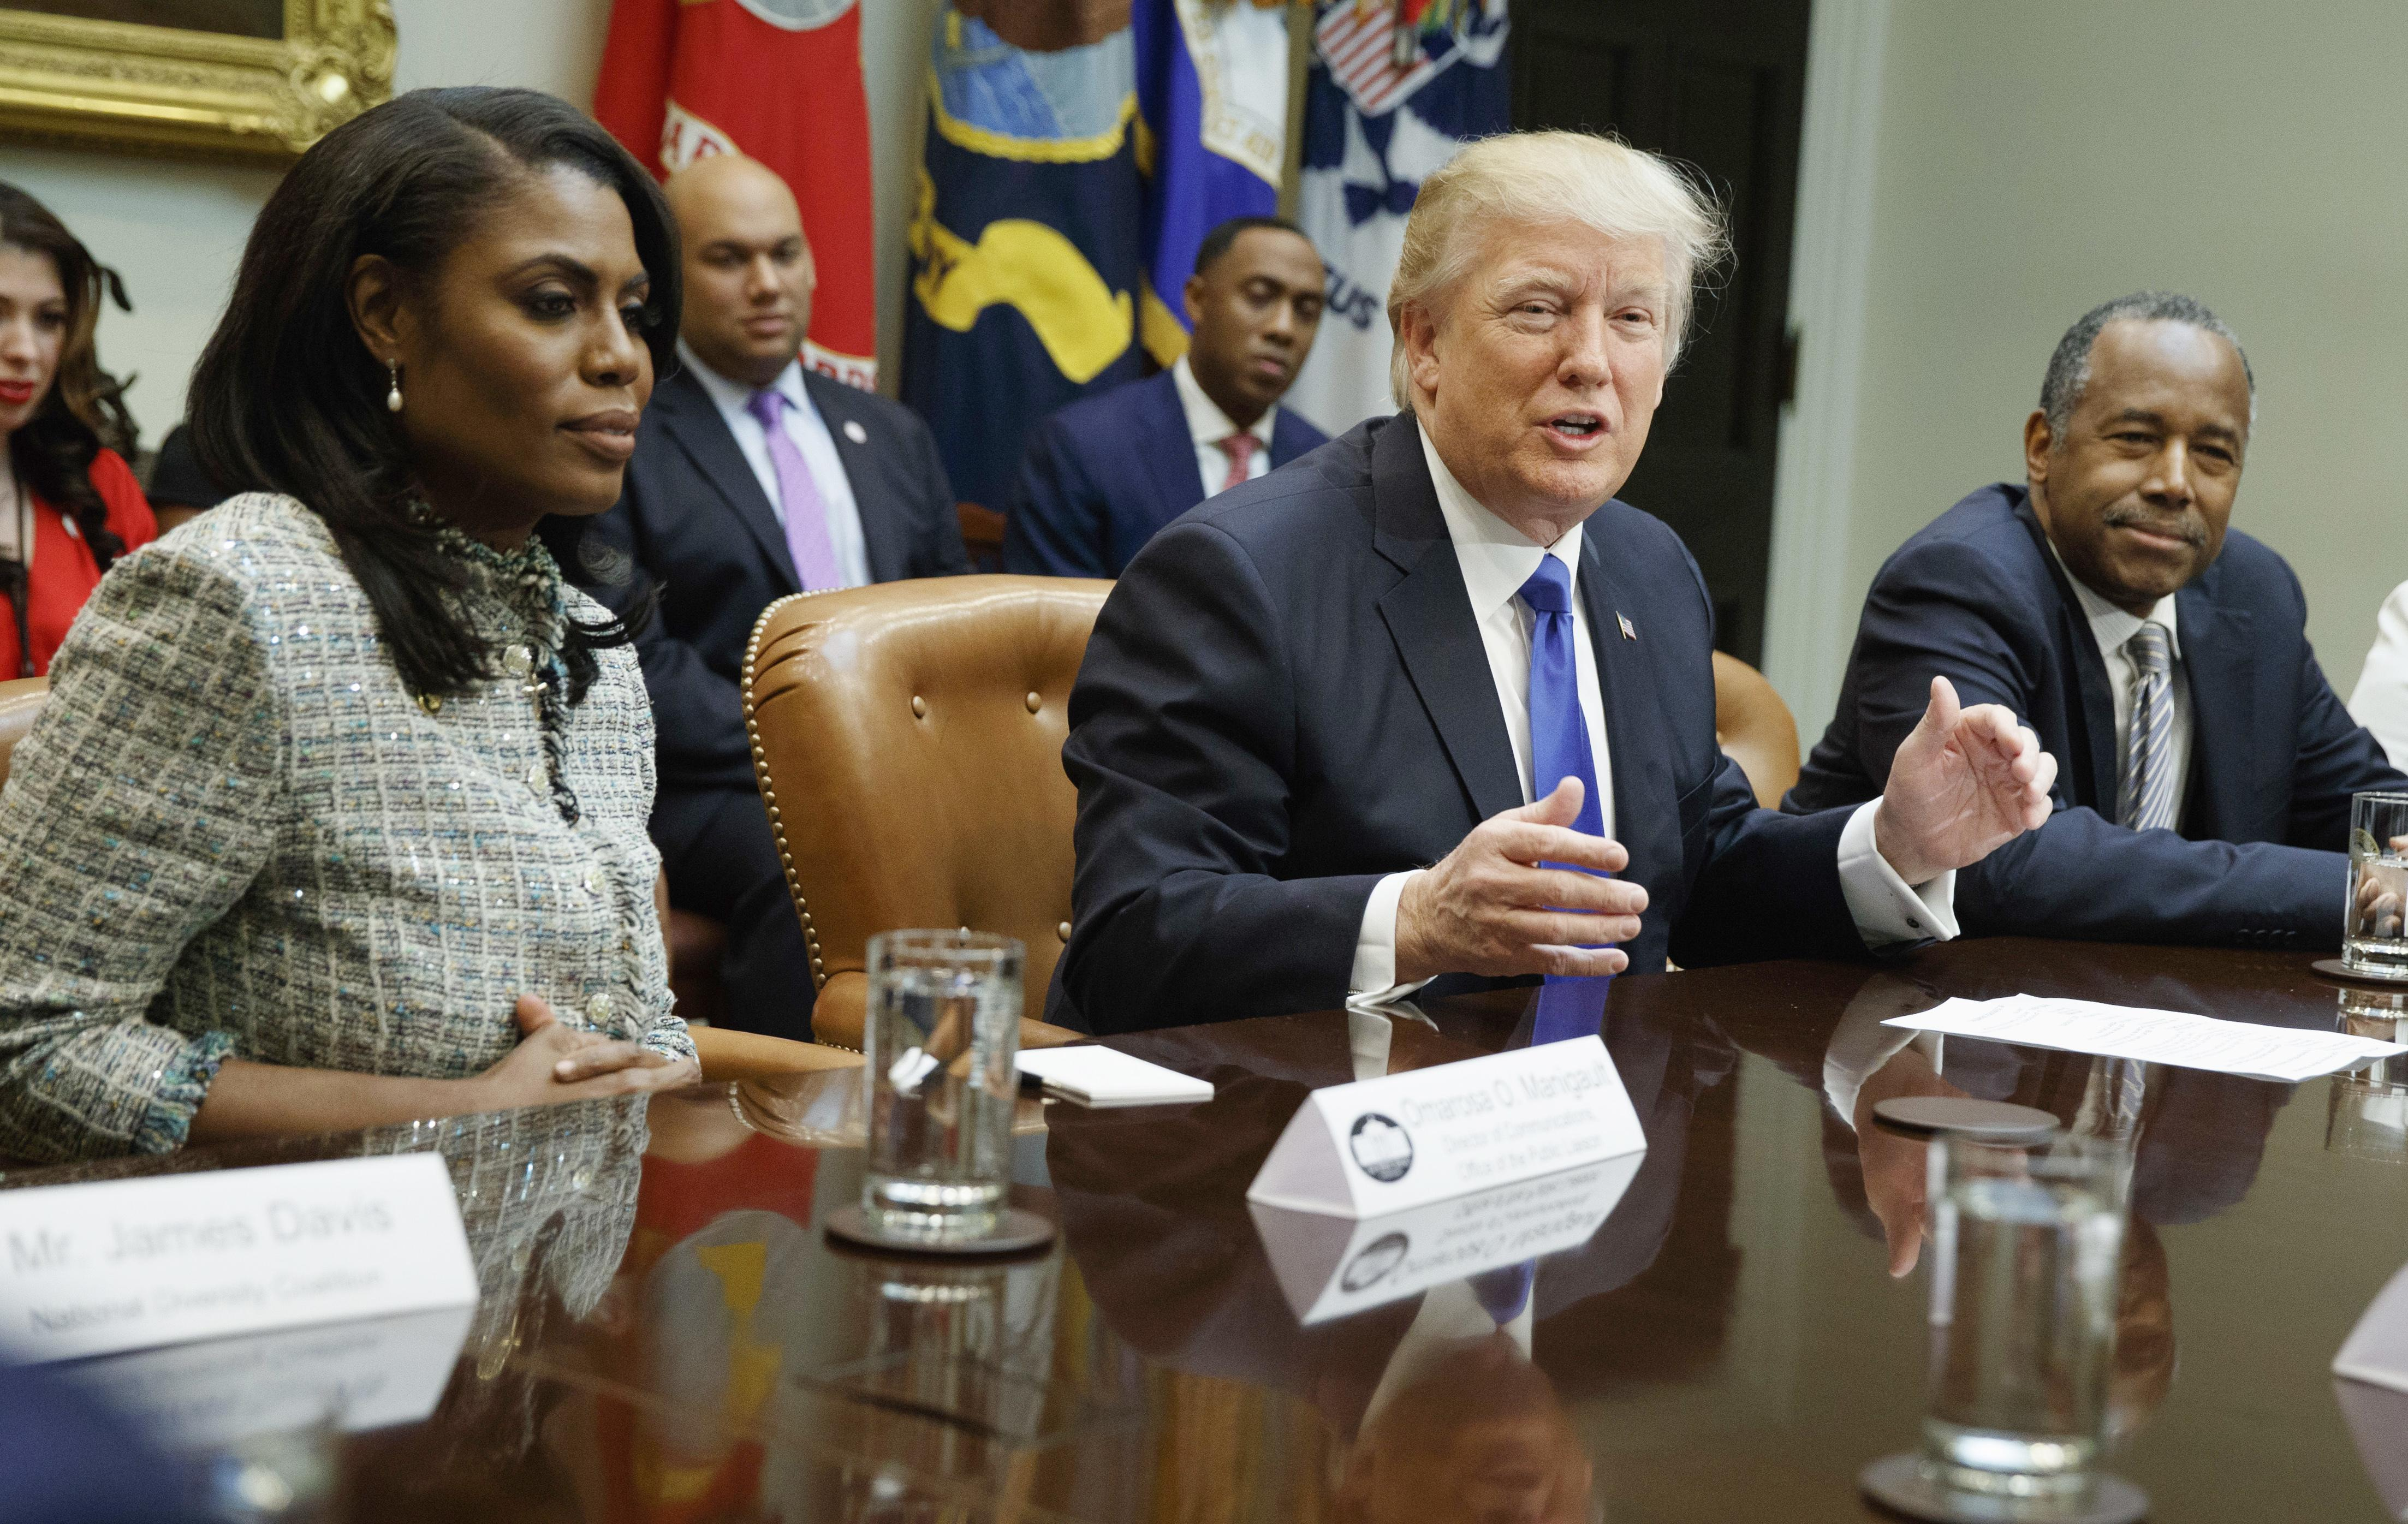 Trump rips 'disgusting' Omarosa, says he's suing aide for violating 'confidentiality' agreement